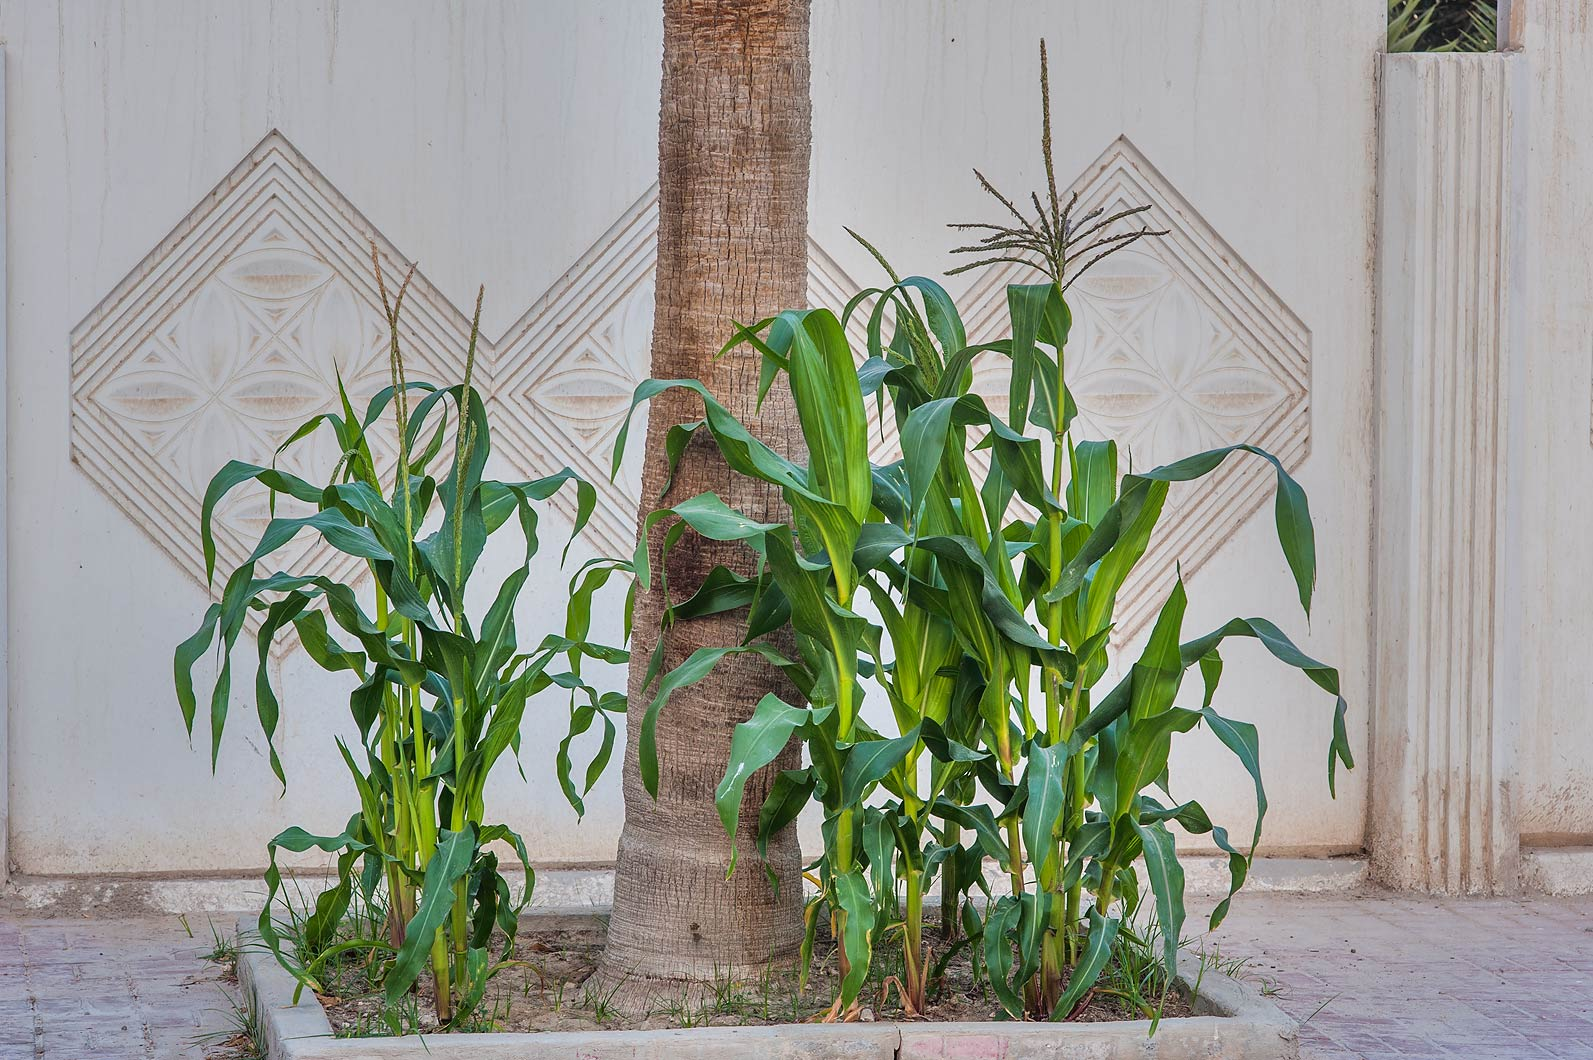 Sweet corn (Zea mays) on Ibn Nusaih St. in Onaiza area. Doha, Qatar